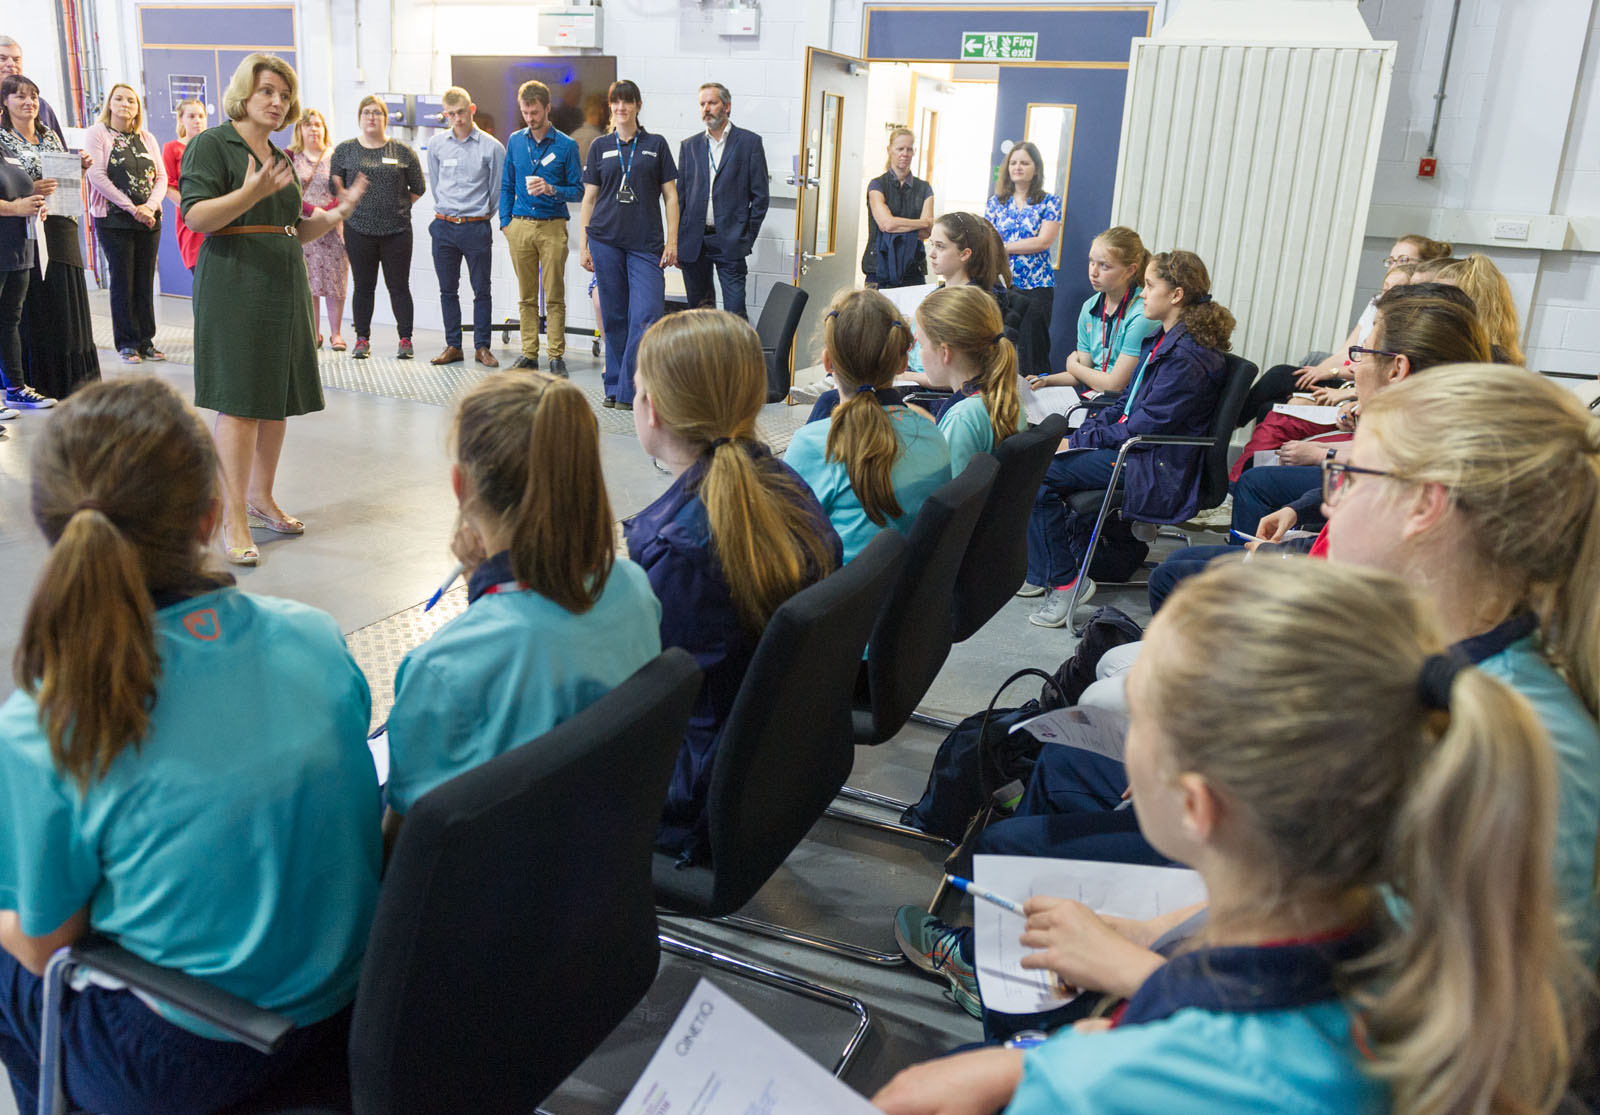 INWED students receiving a talk